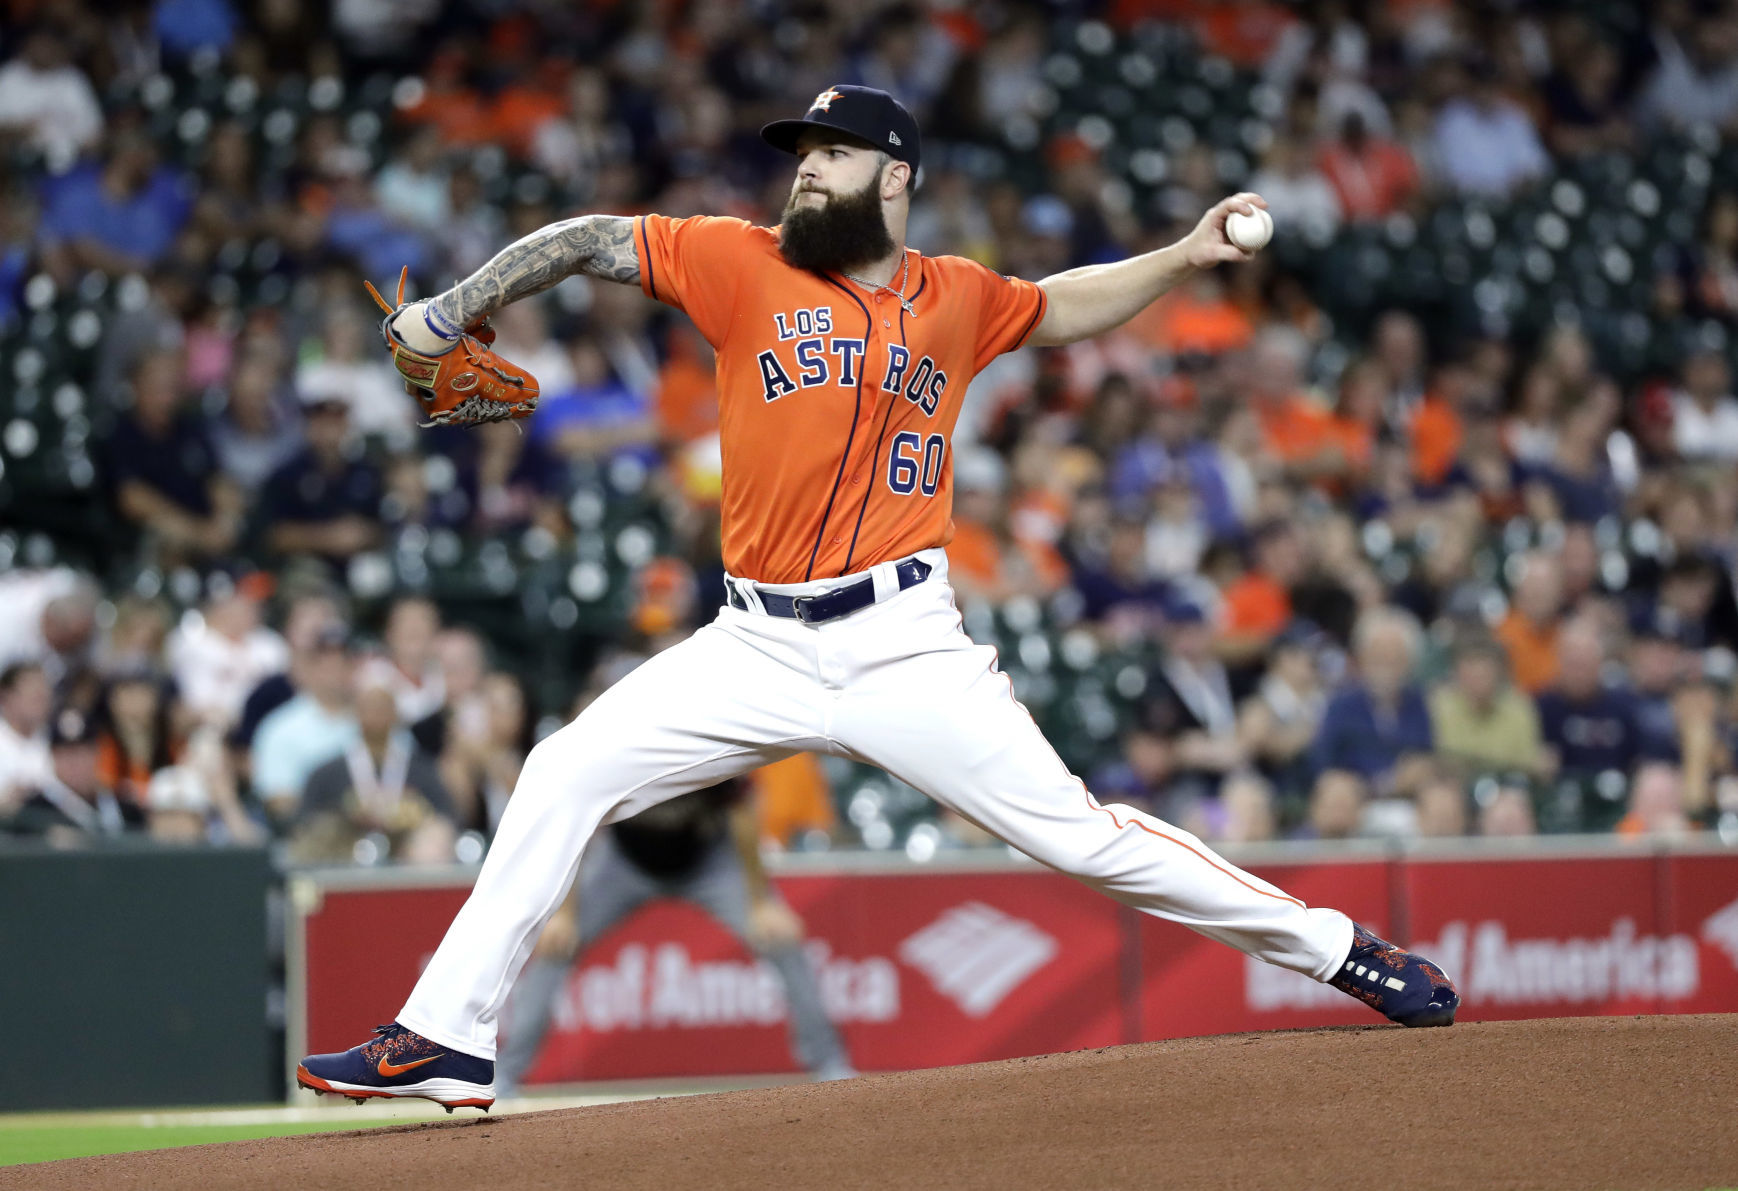 Where The Cardinals Still Stand On Keuchel Sports Stltoday Com